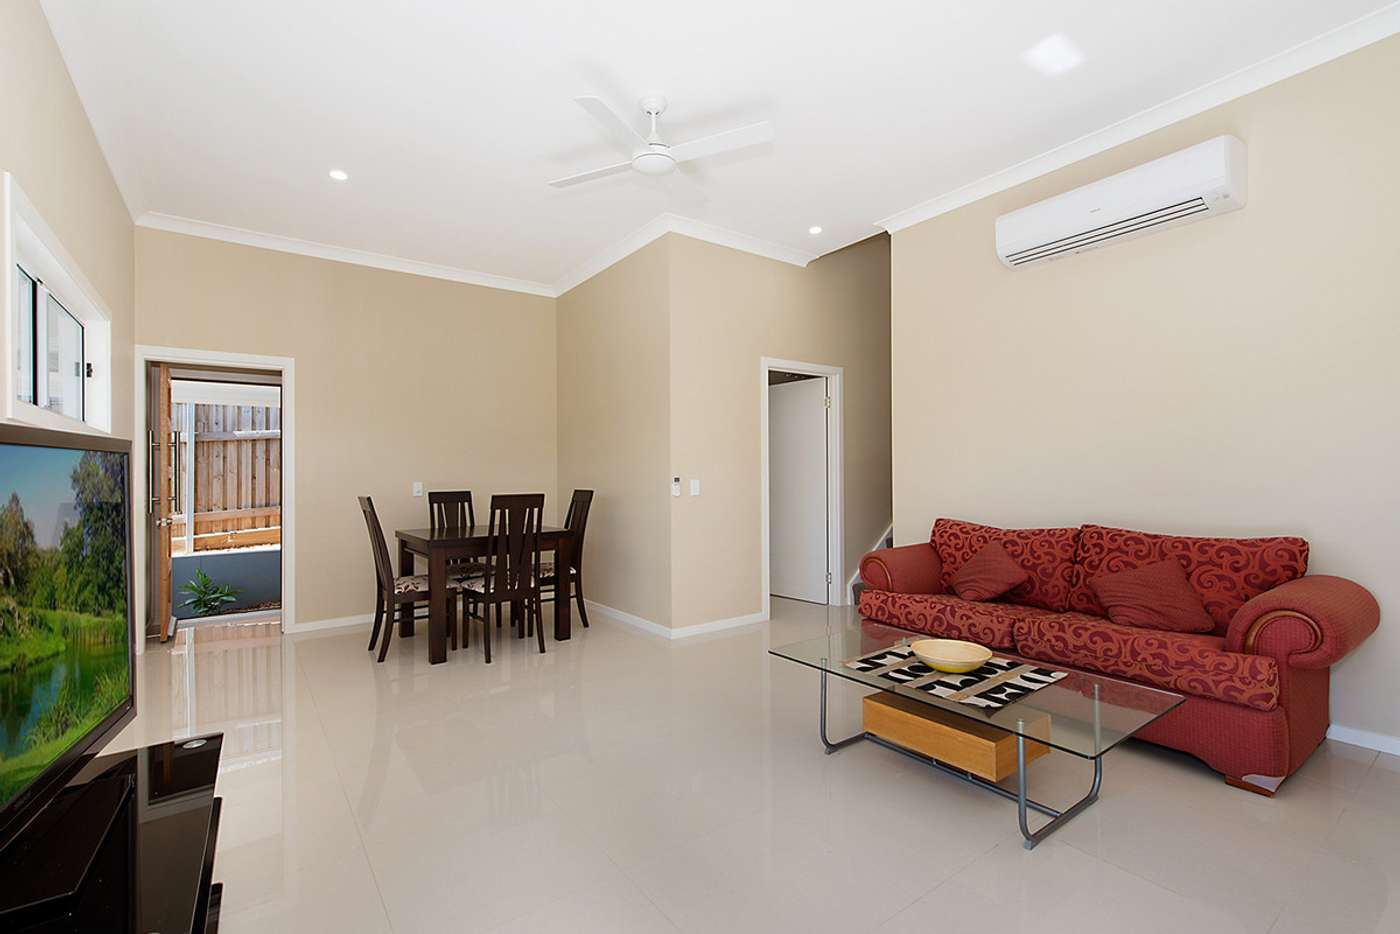 Sixth view of Homely house listing, 42 Renton Street, Camp Hill QLD 4152